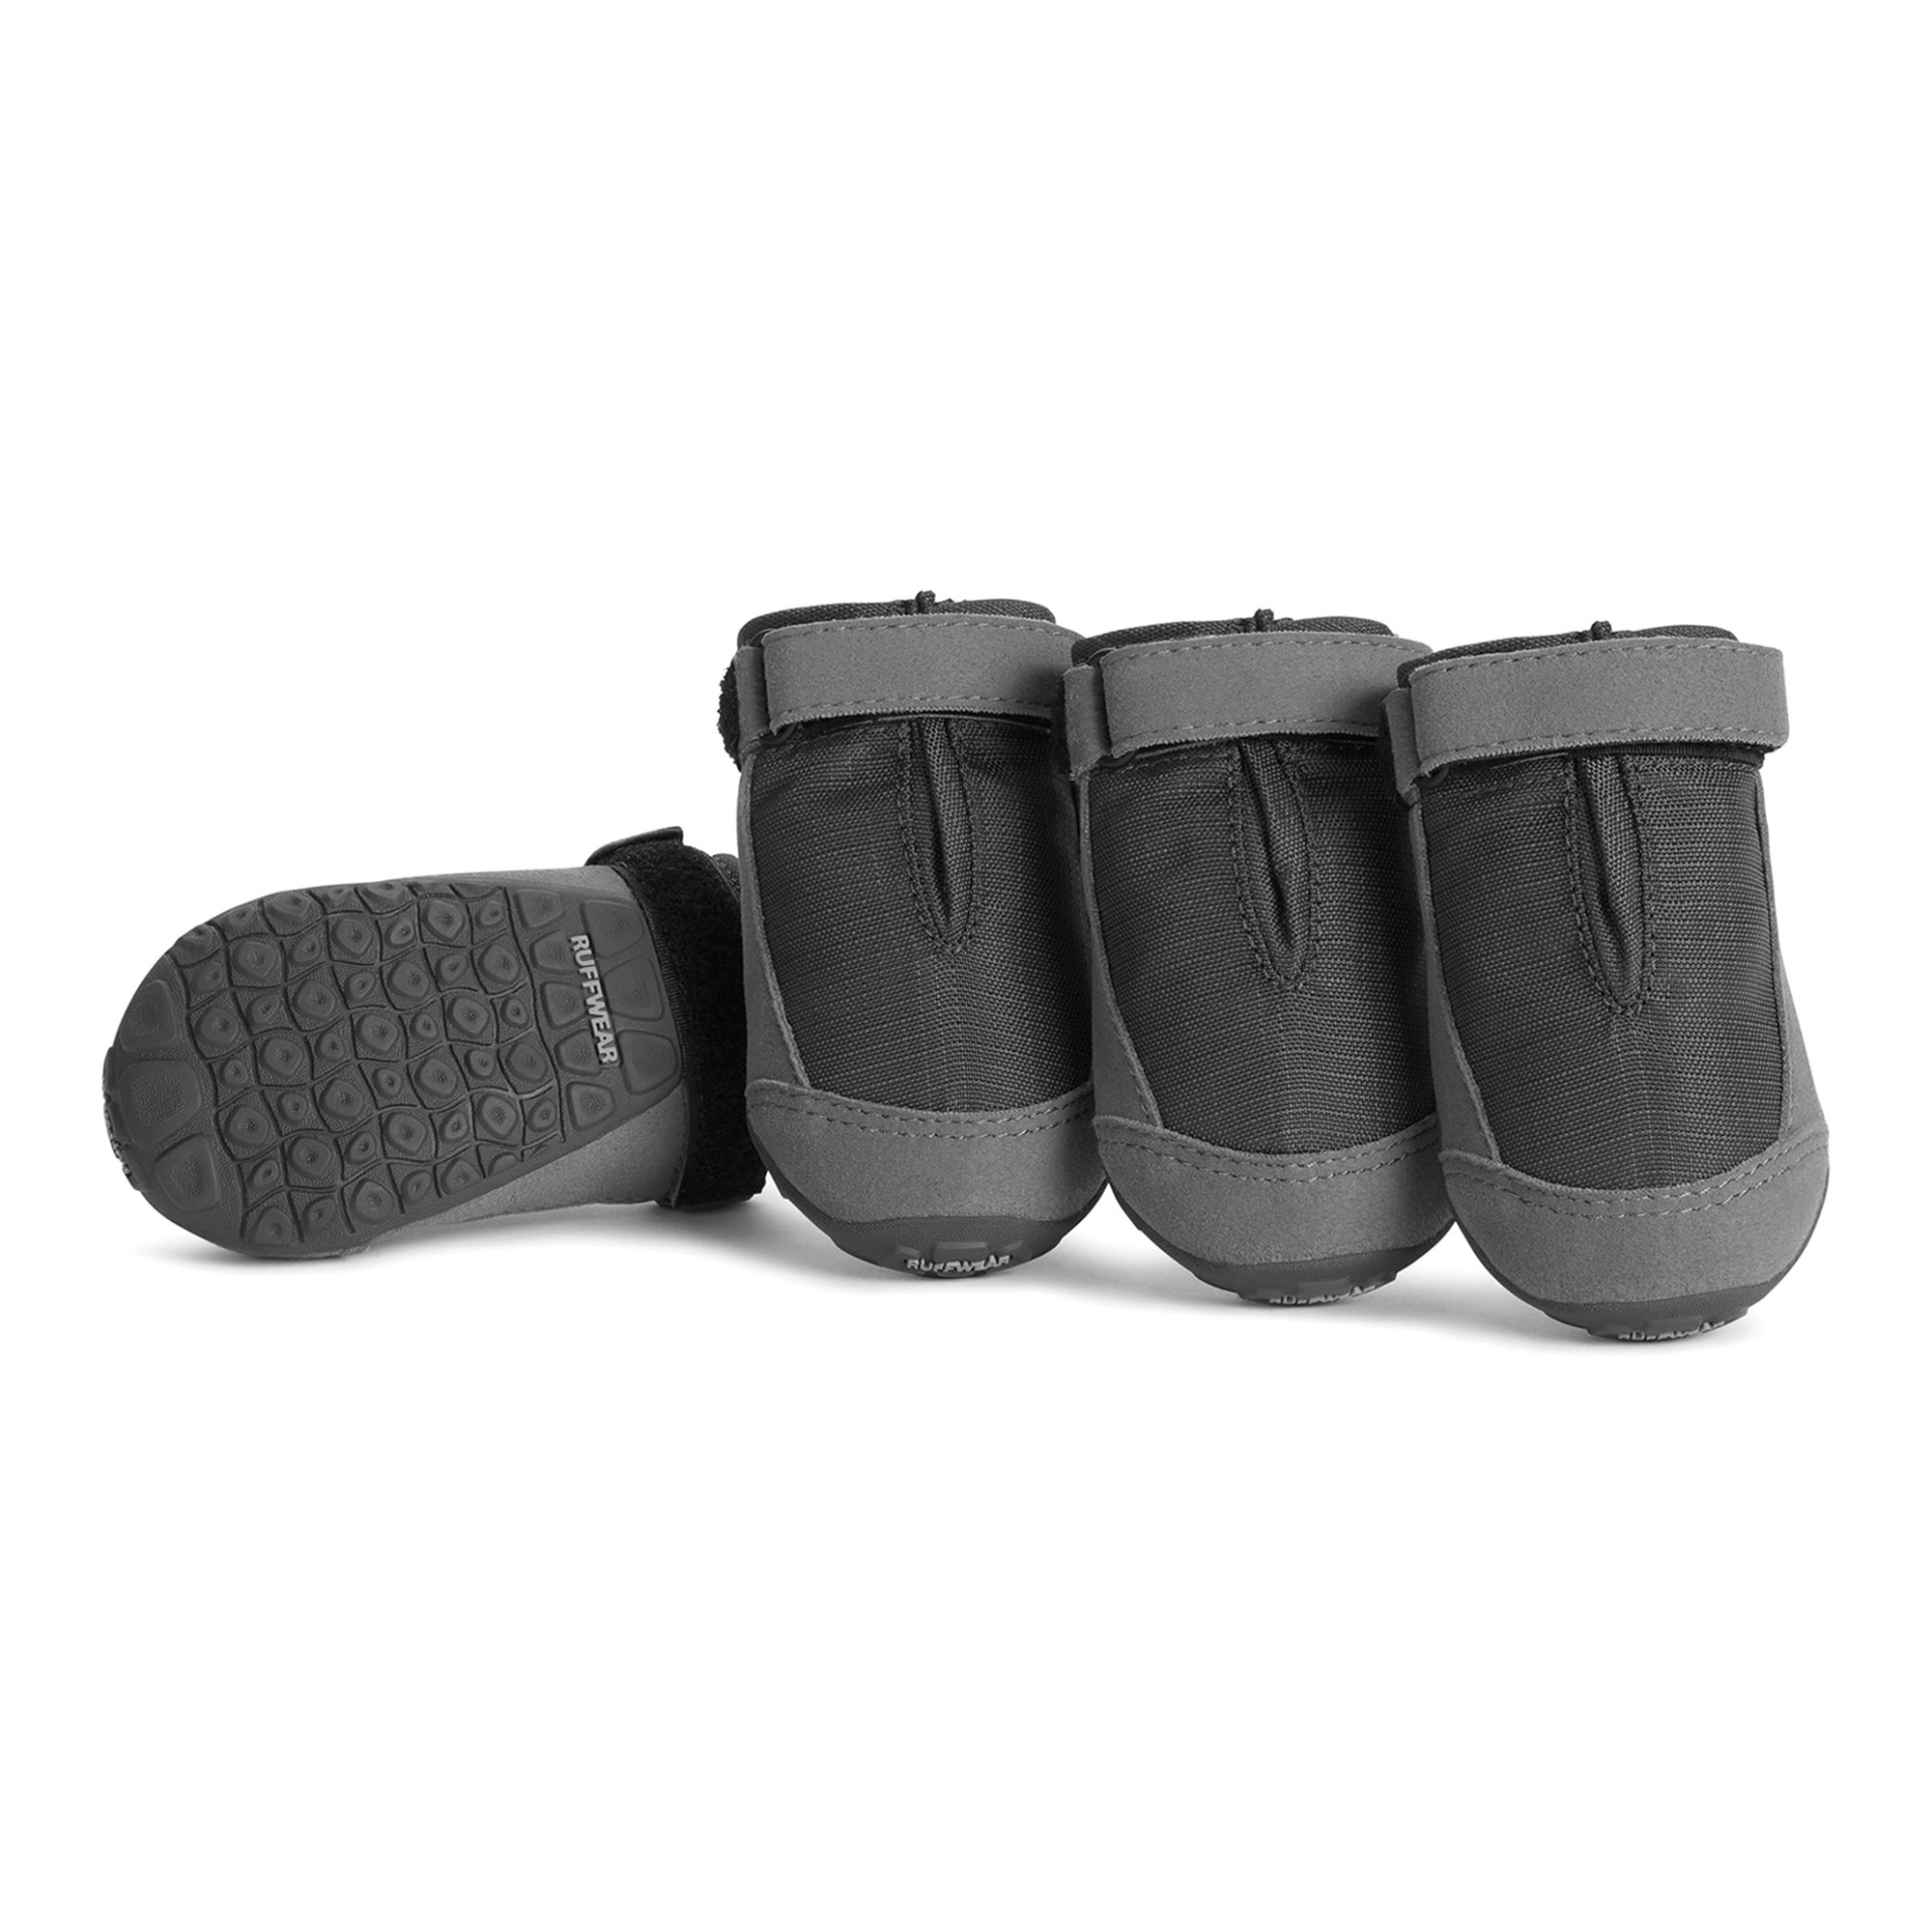 RUFFWEAR - Summit Trex Boots for Dogs, Twilight Gray, 2.0 in (51 mm)